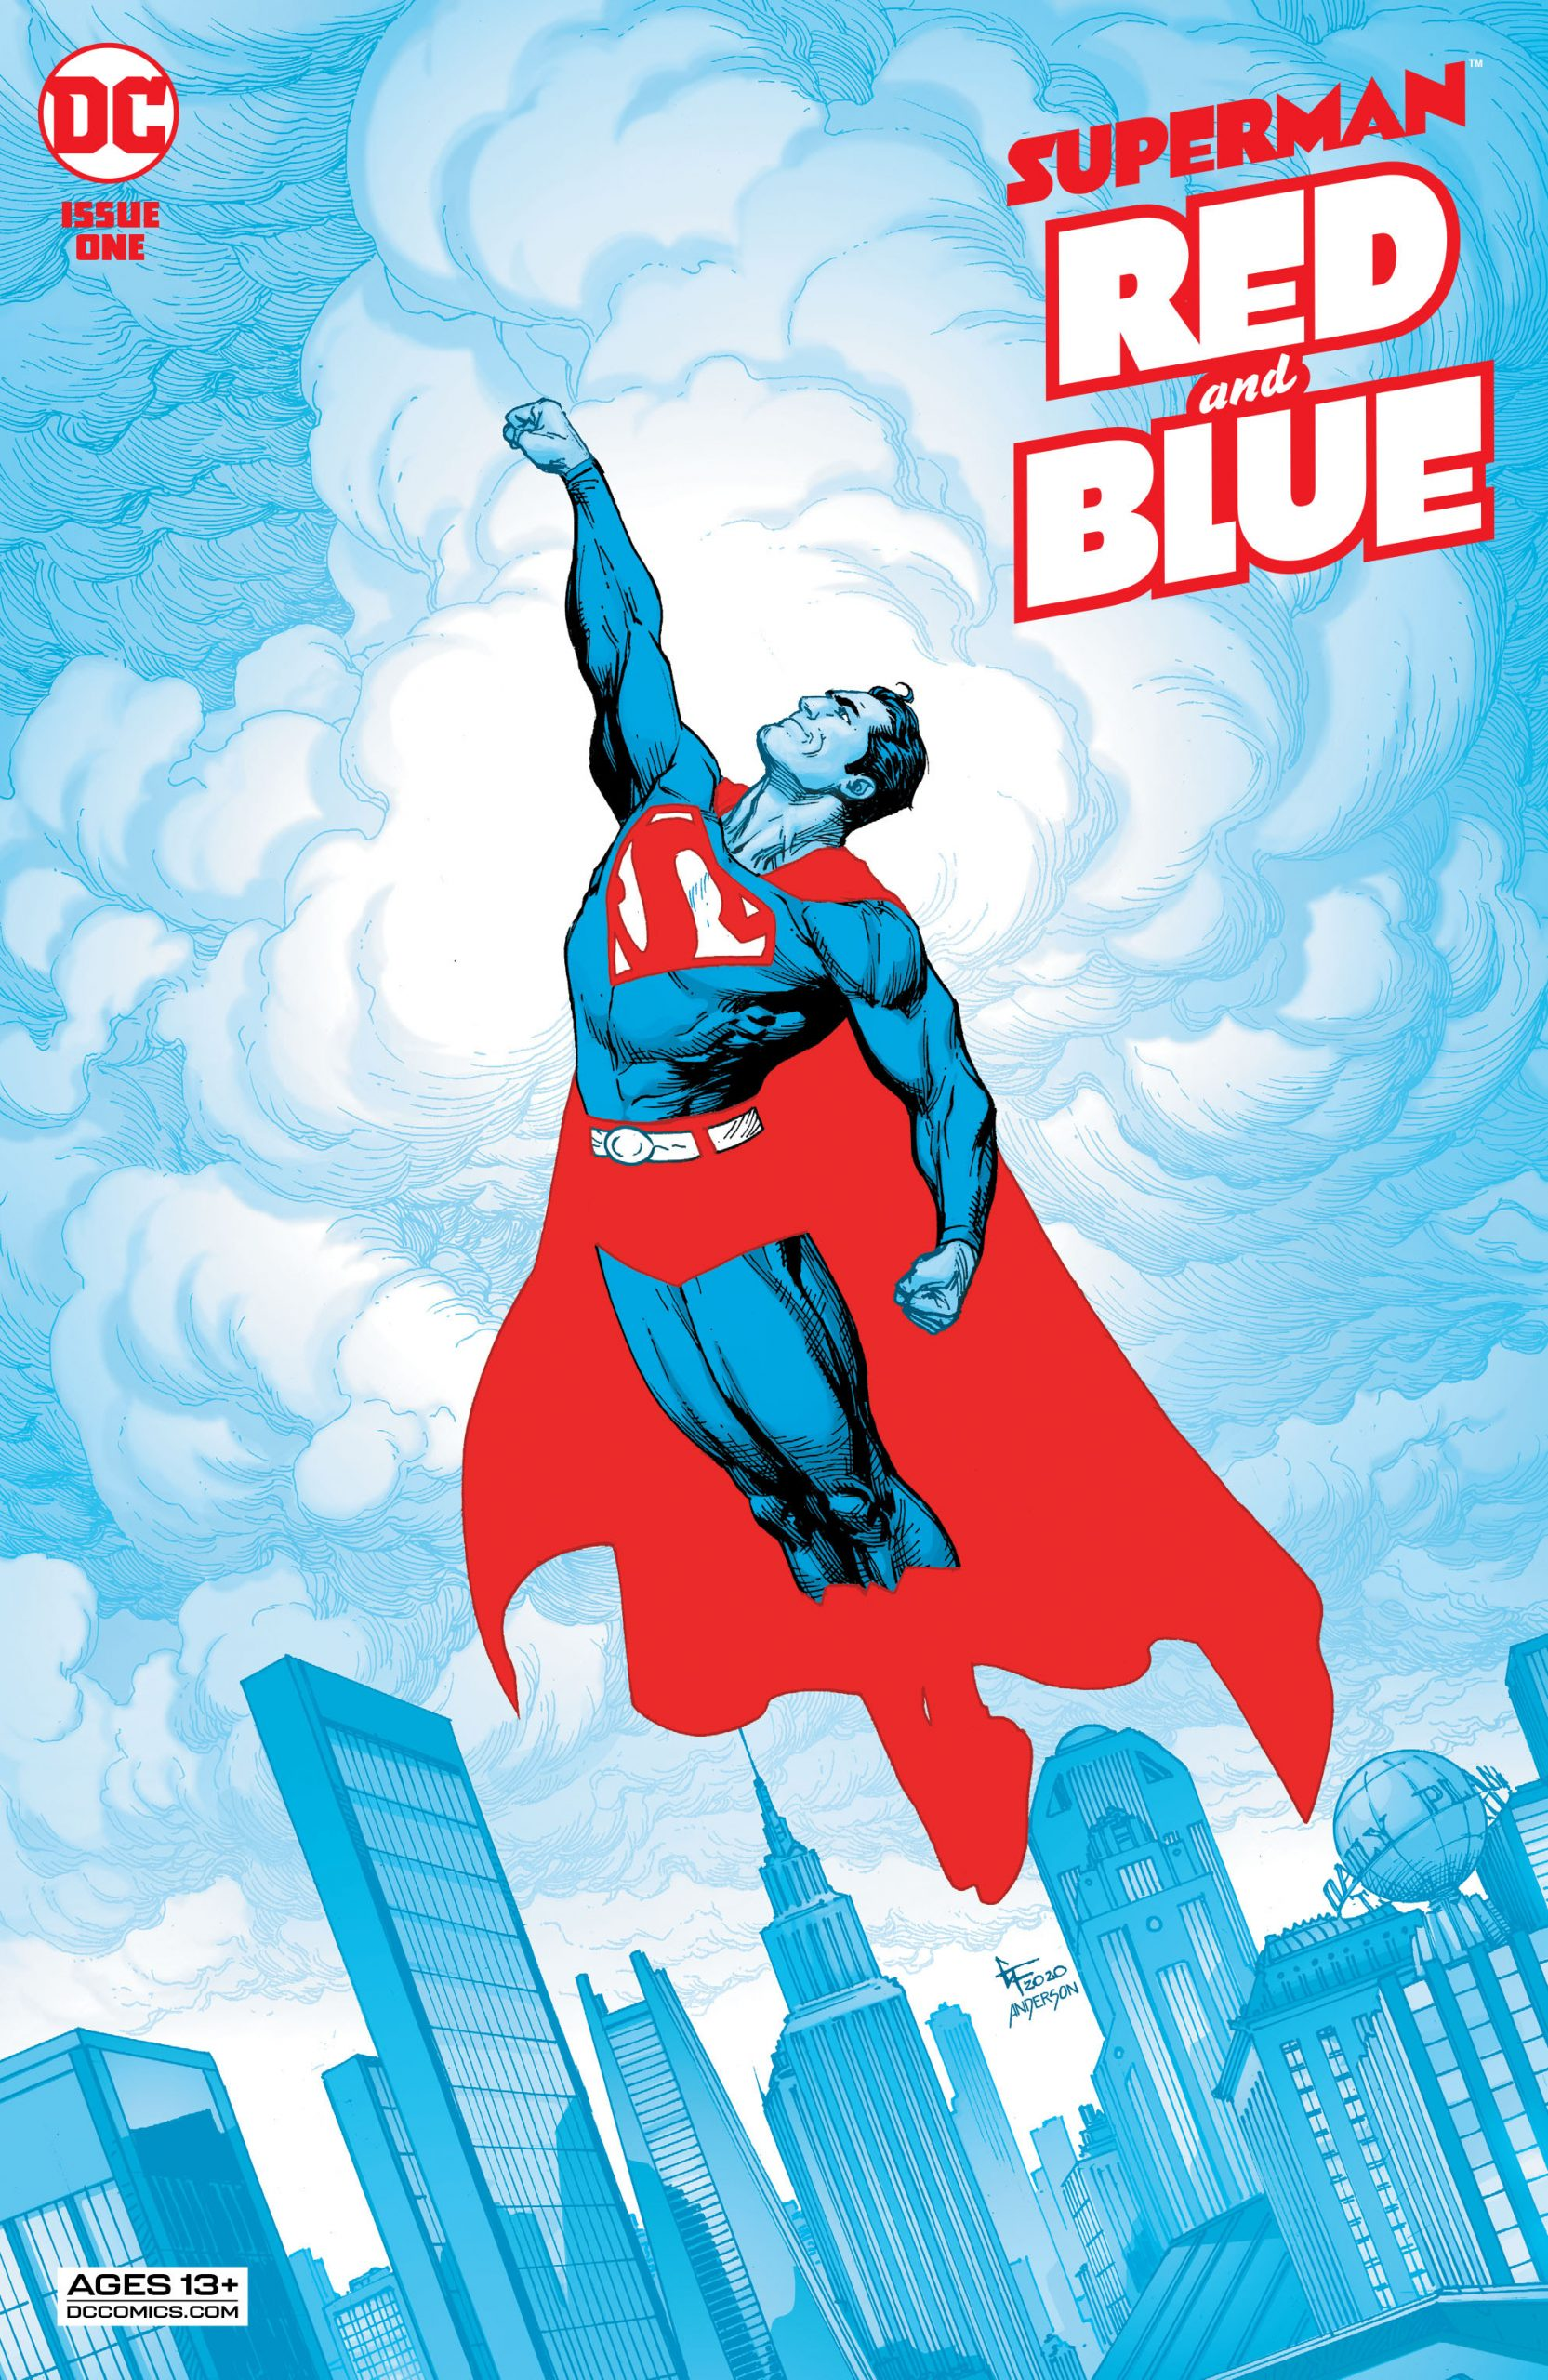 Superman Red & Blue Number 1